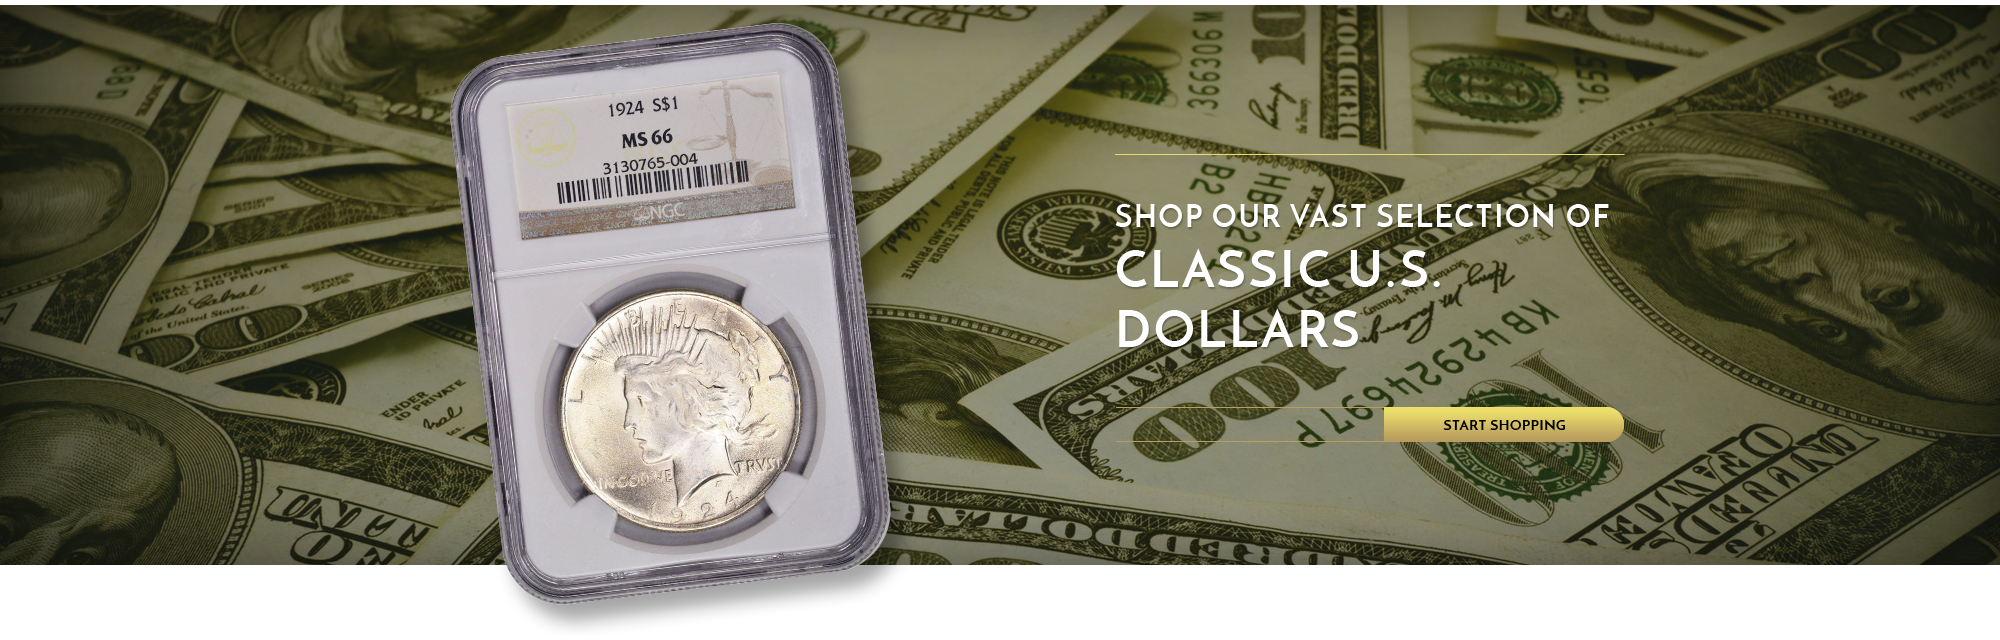 Shop our vast Selection of Classic U.S. Dollars - start shopping